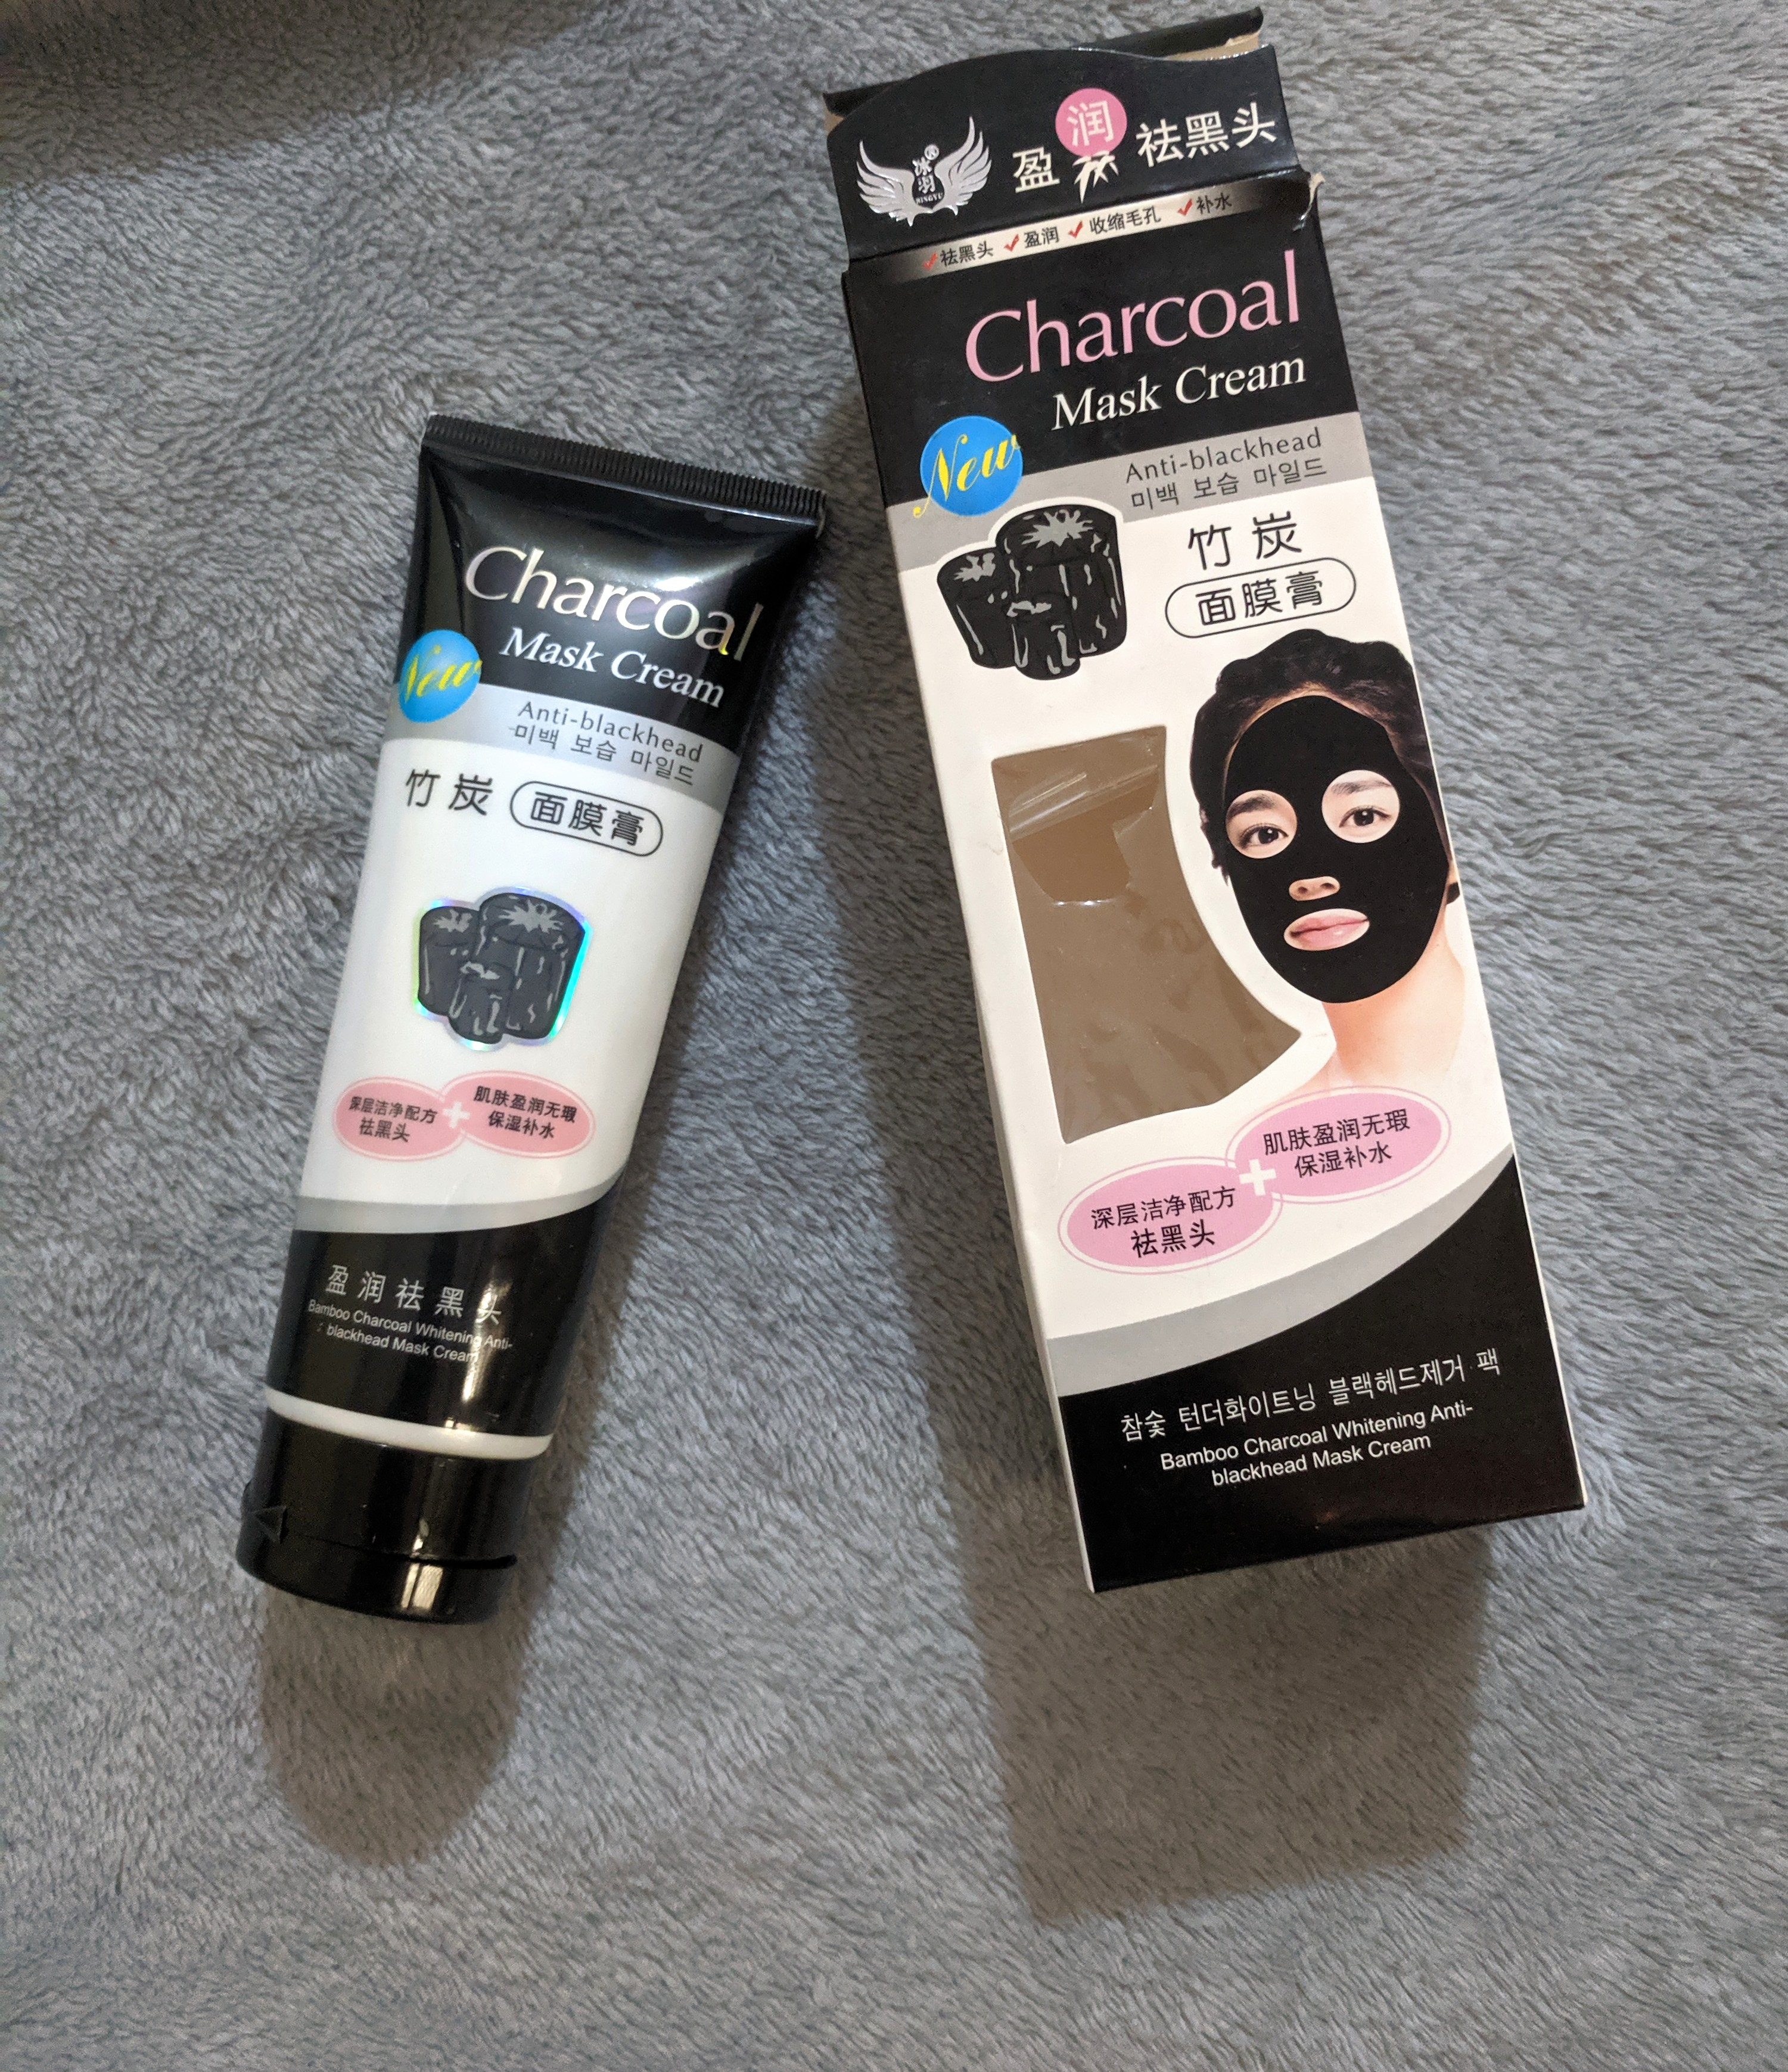 Charcoal Mask Cream-Painless Charcoal peel of mask-By smritireviewer-2